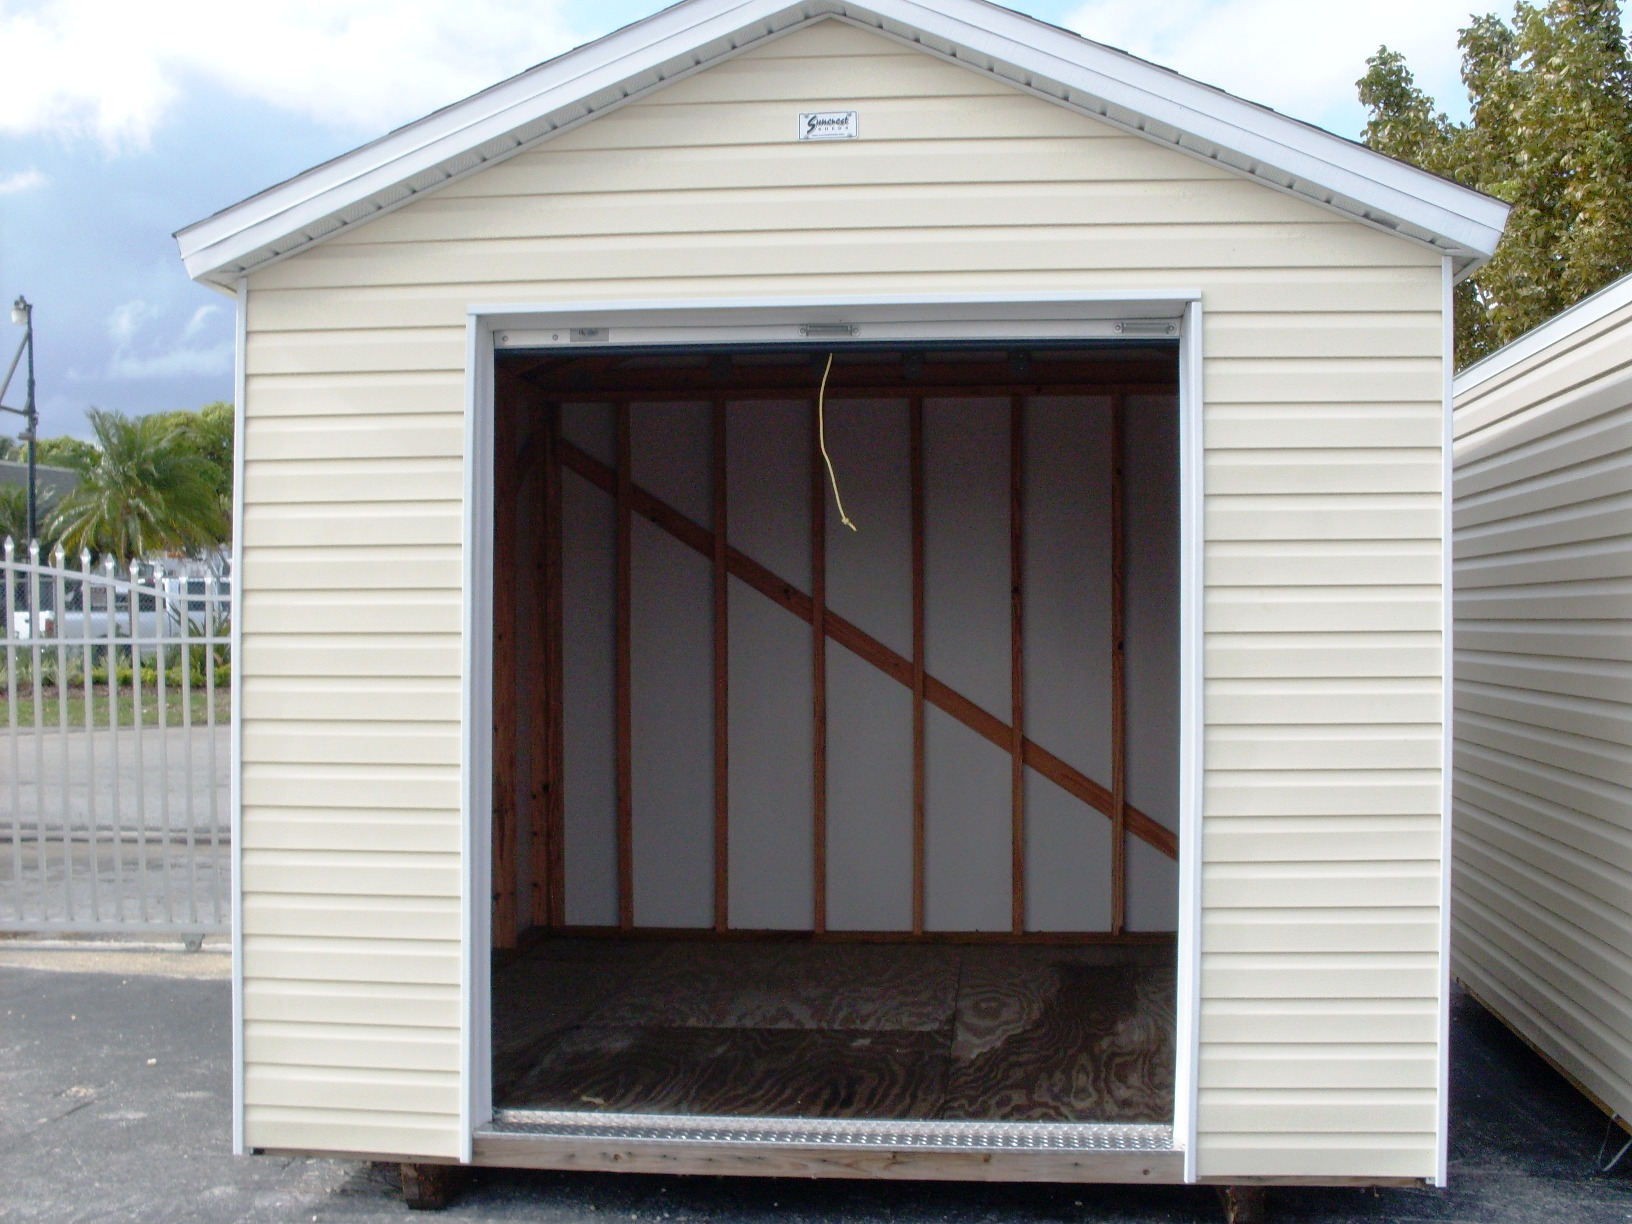 Garden home plans storage shed roll up door for Storage shed overhead door